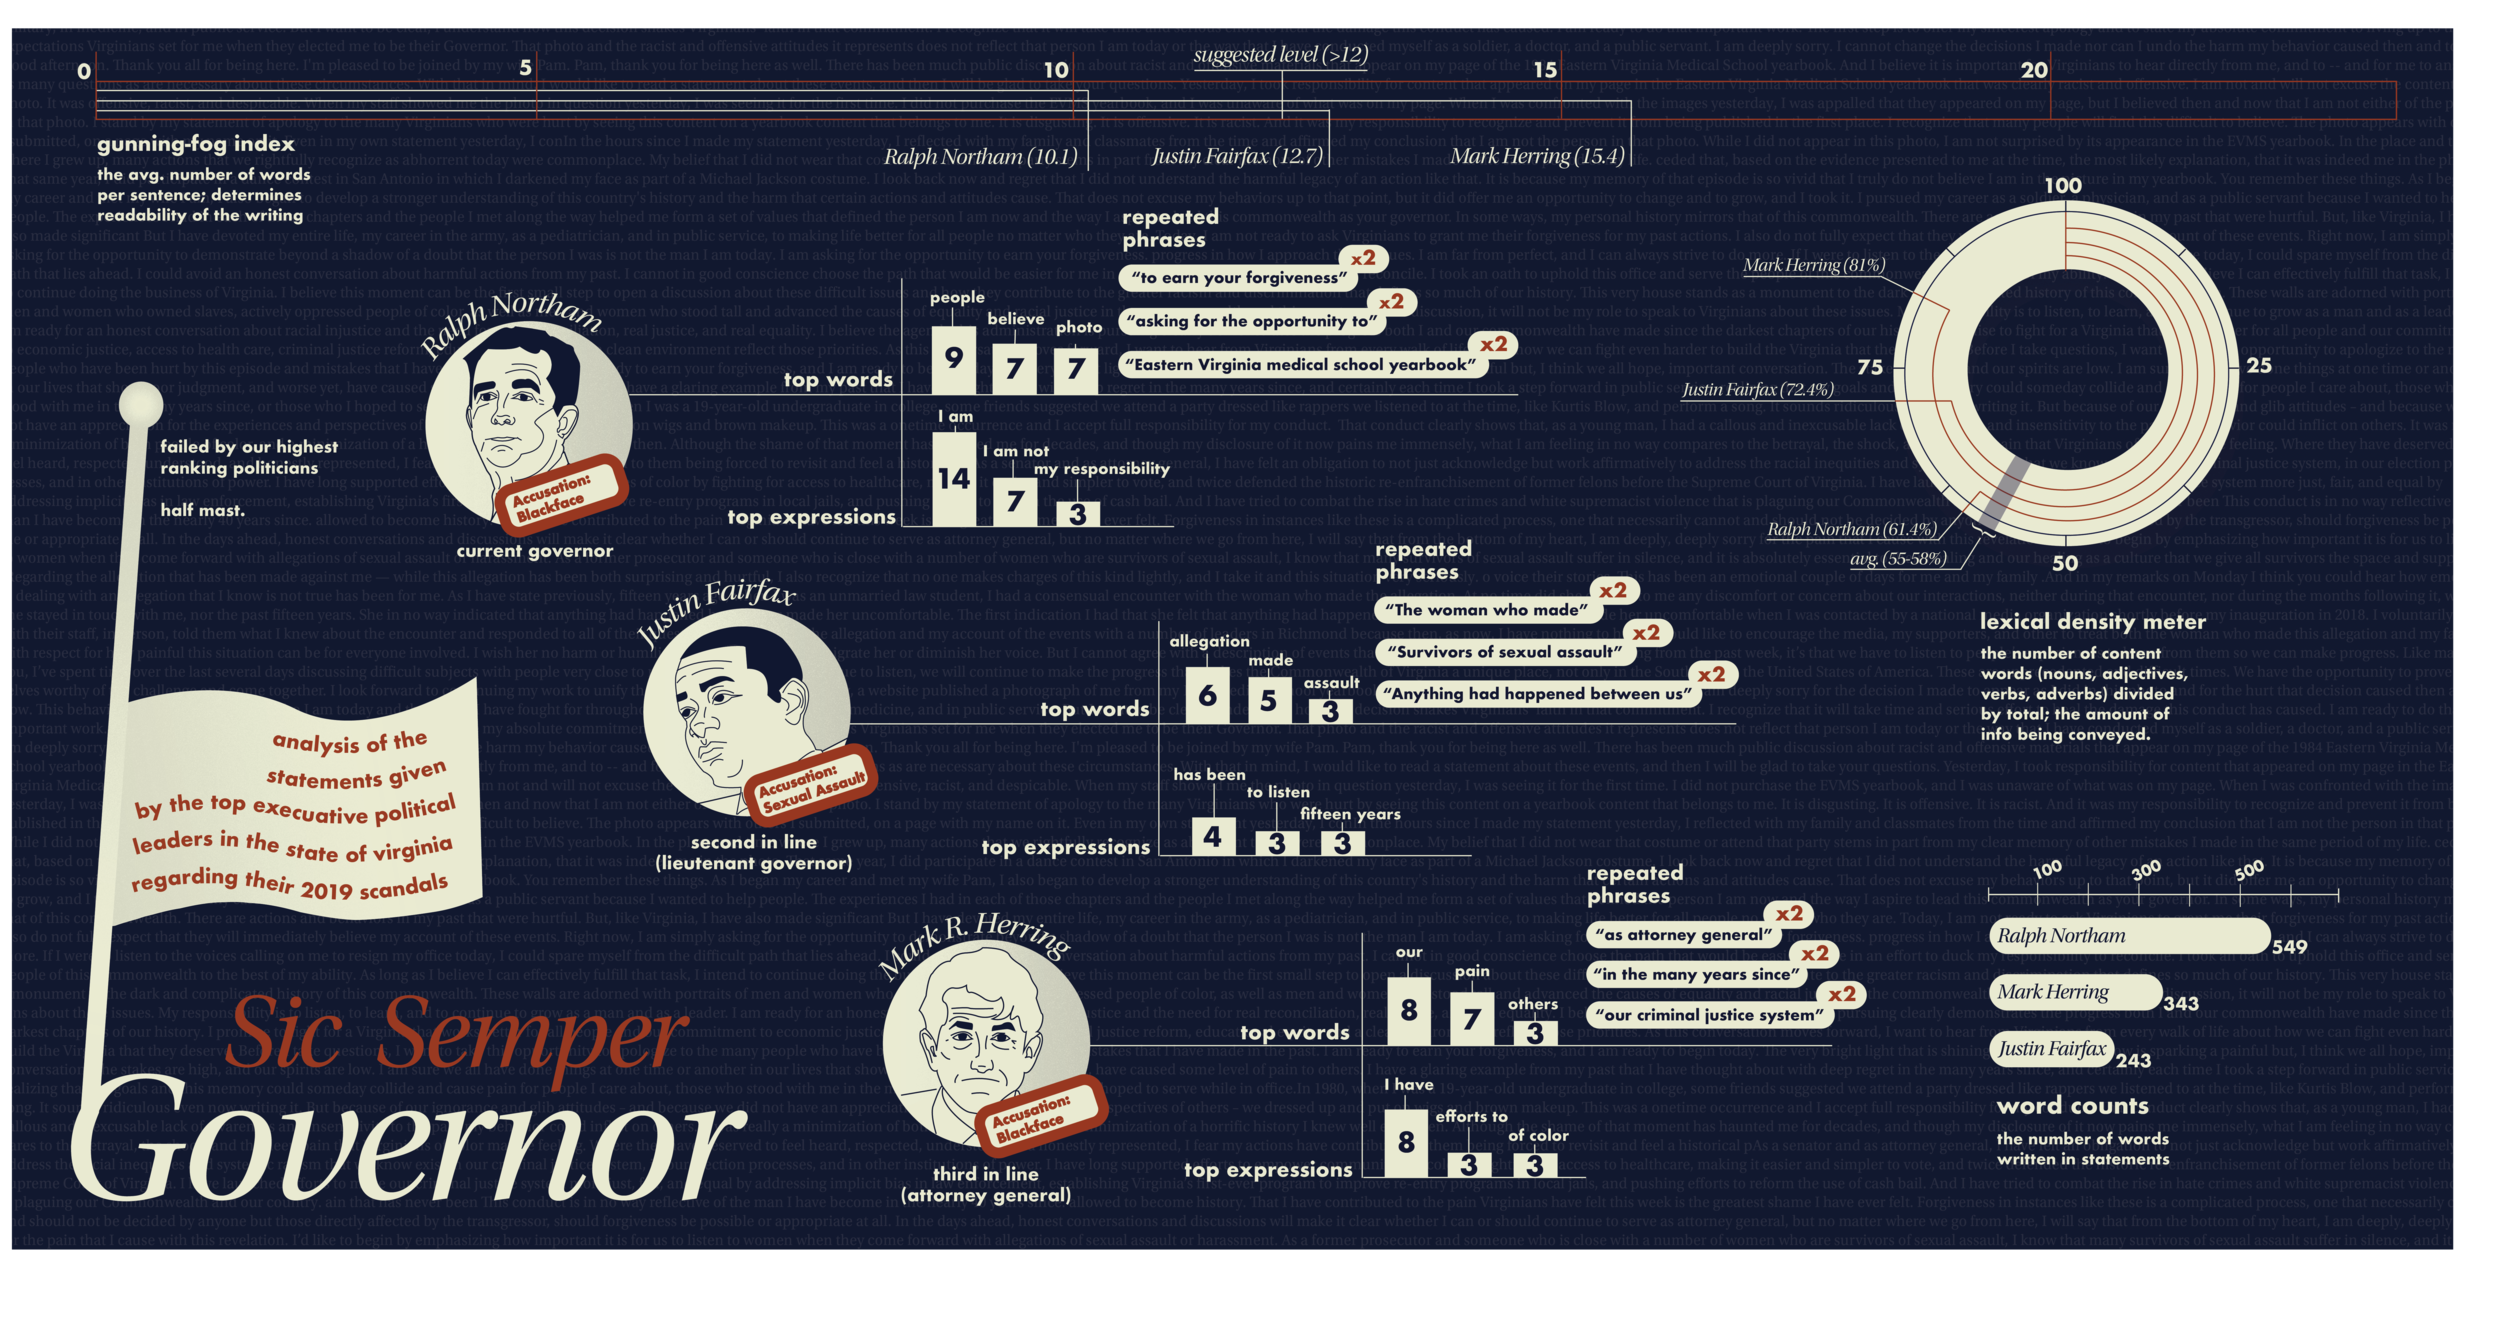 Infographic was created by collecting data from a word analysis of the statements given by the three Virginia politicians in line for Governor.